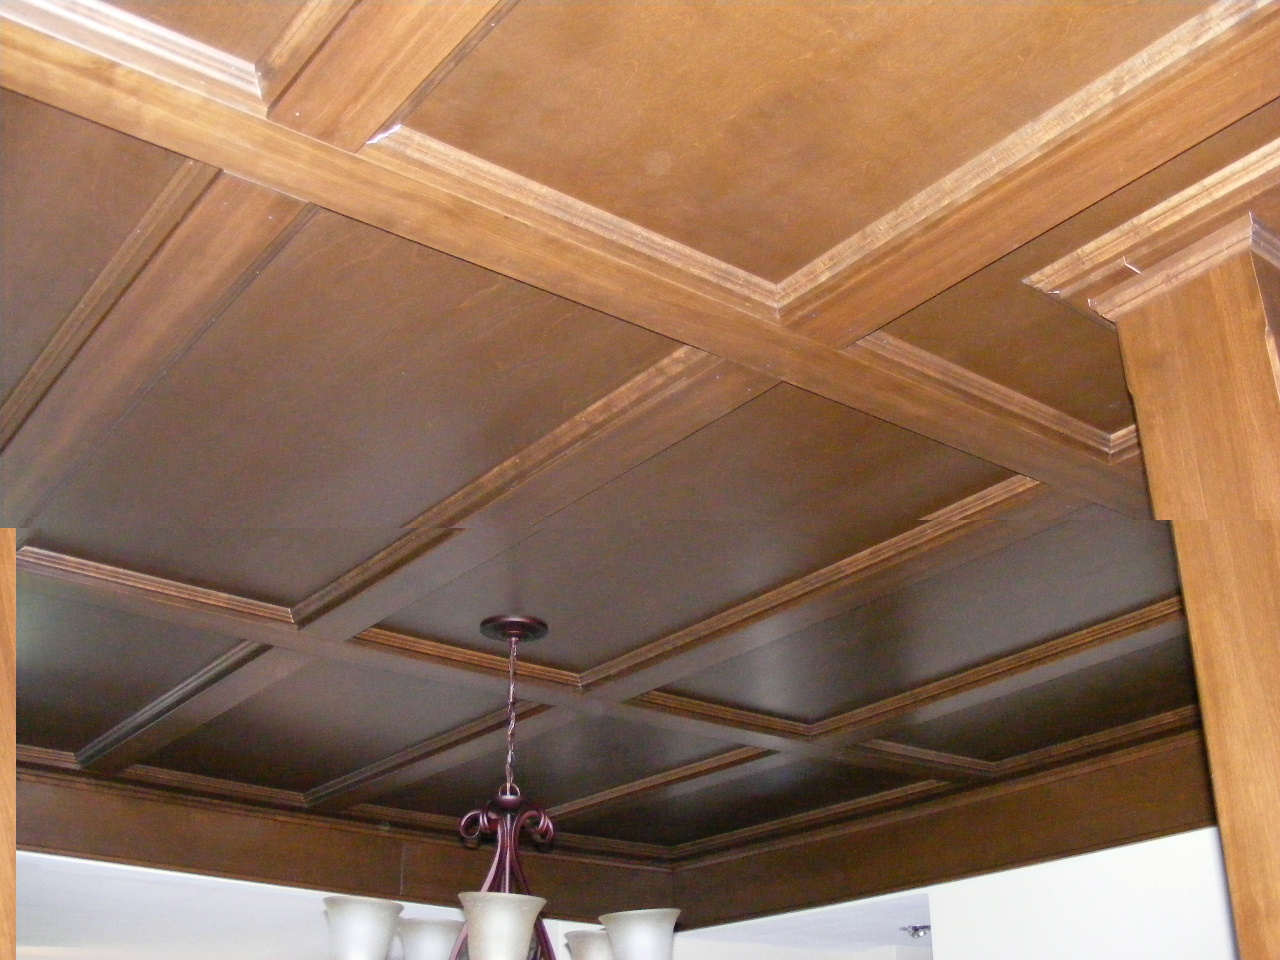 plafond a caisson perfect img with plafond a caisson perfect chteau de plafond en caisson de. Black Bedroom Furniture Sets. Home Design Ideas